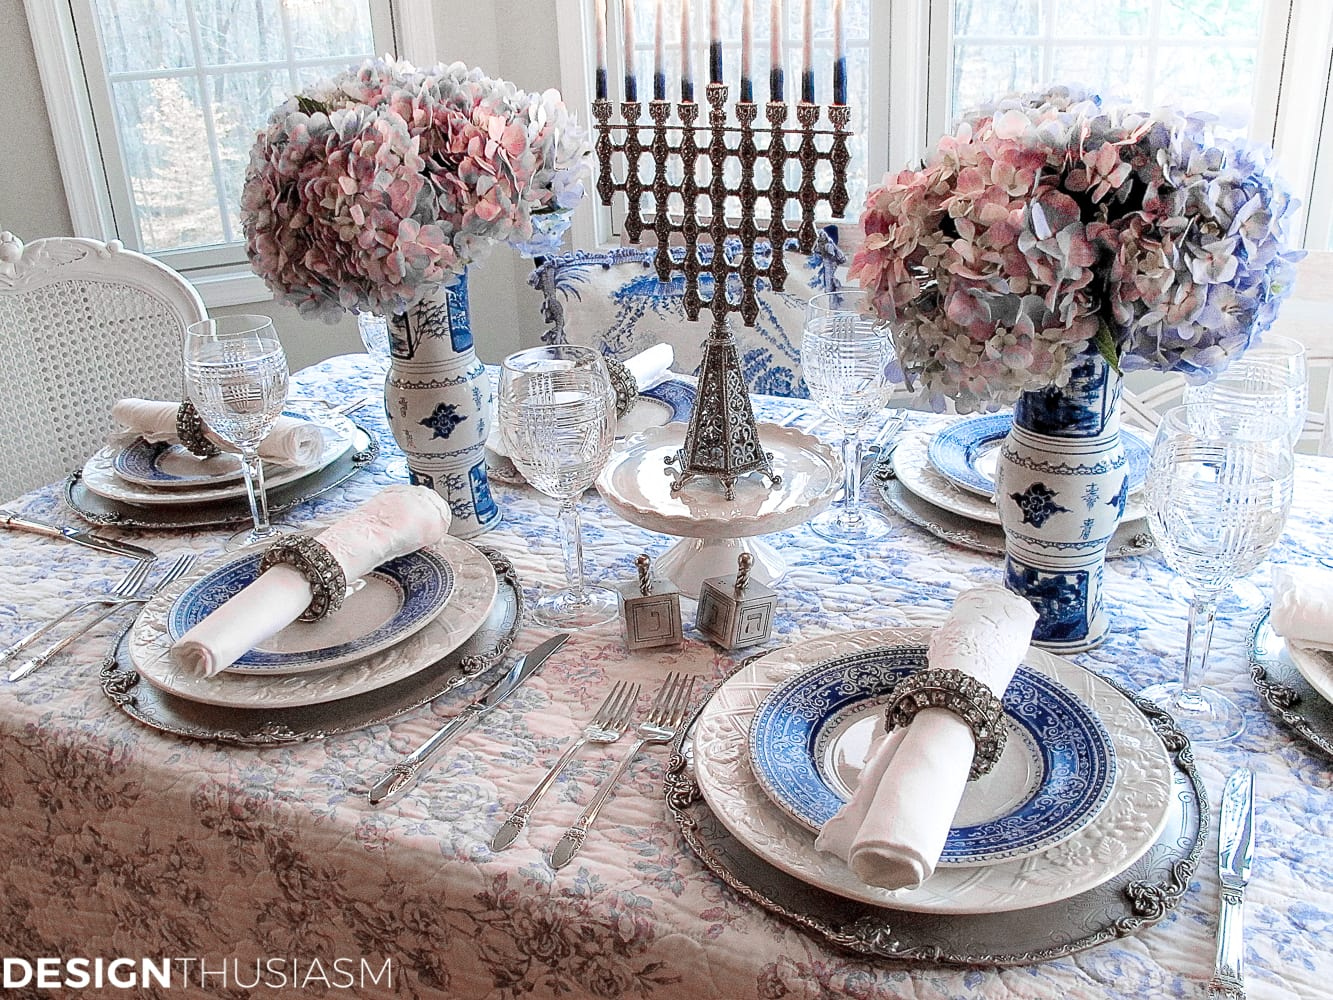 French Toile in a Blue and White Holiday Table Setting - Designthusiasm.com & French Blue and White Holiday Table Setting with Toile